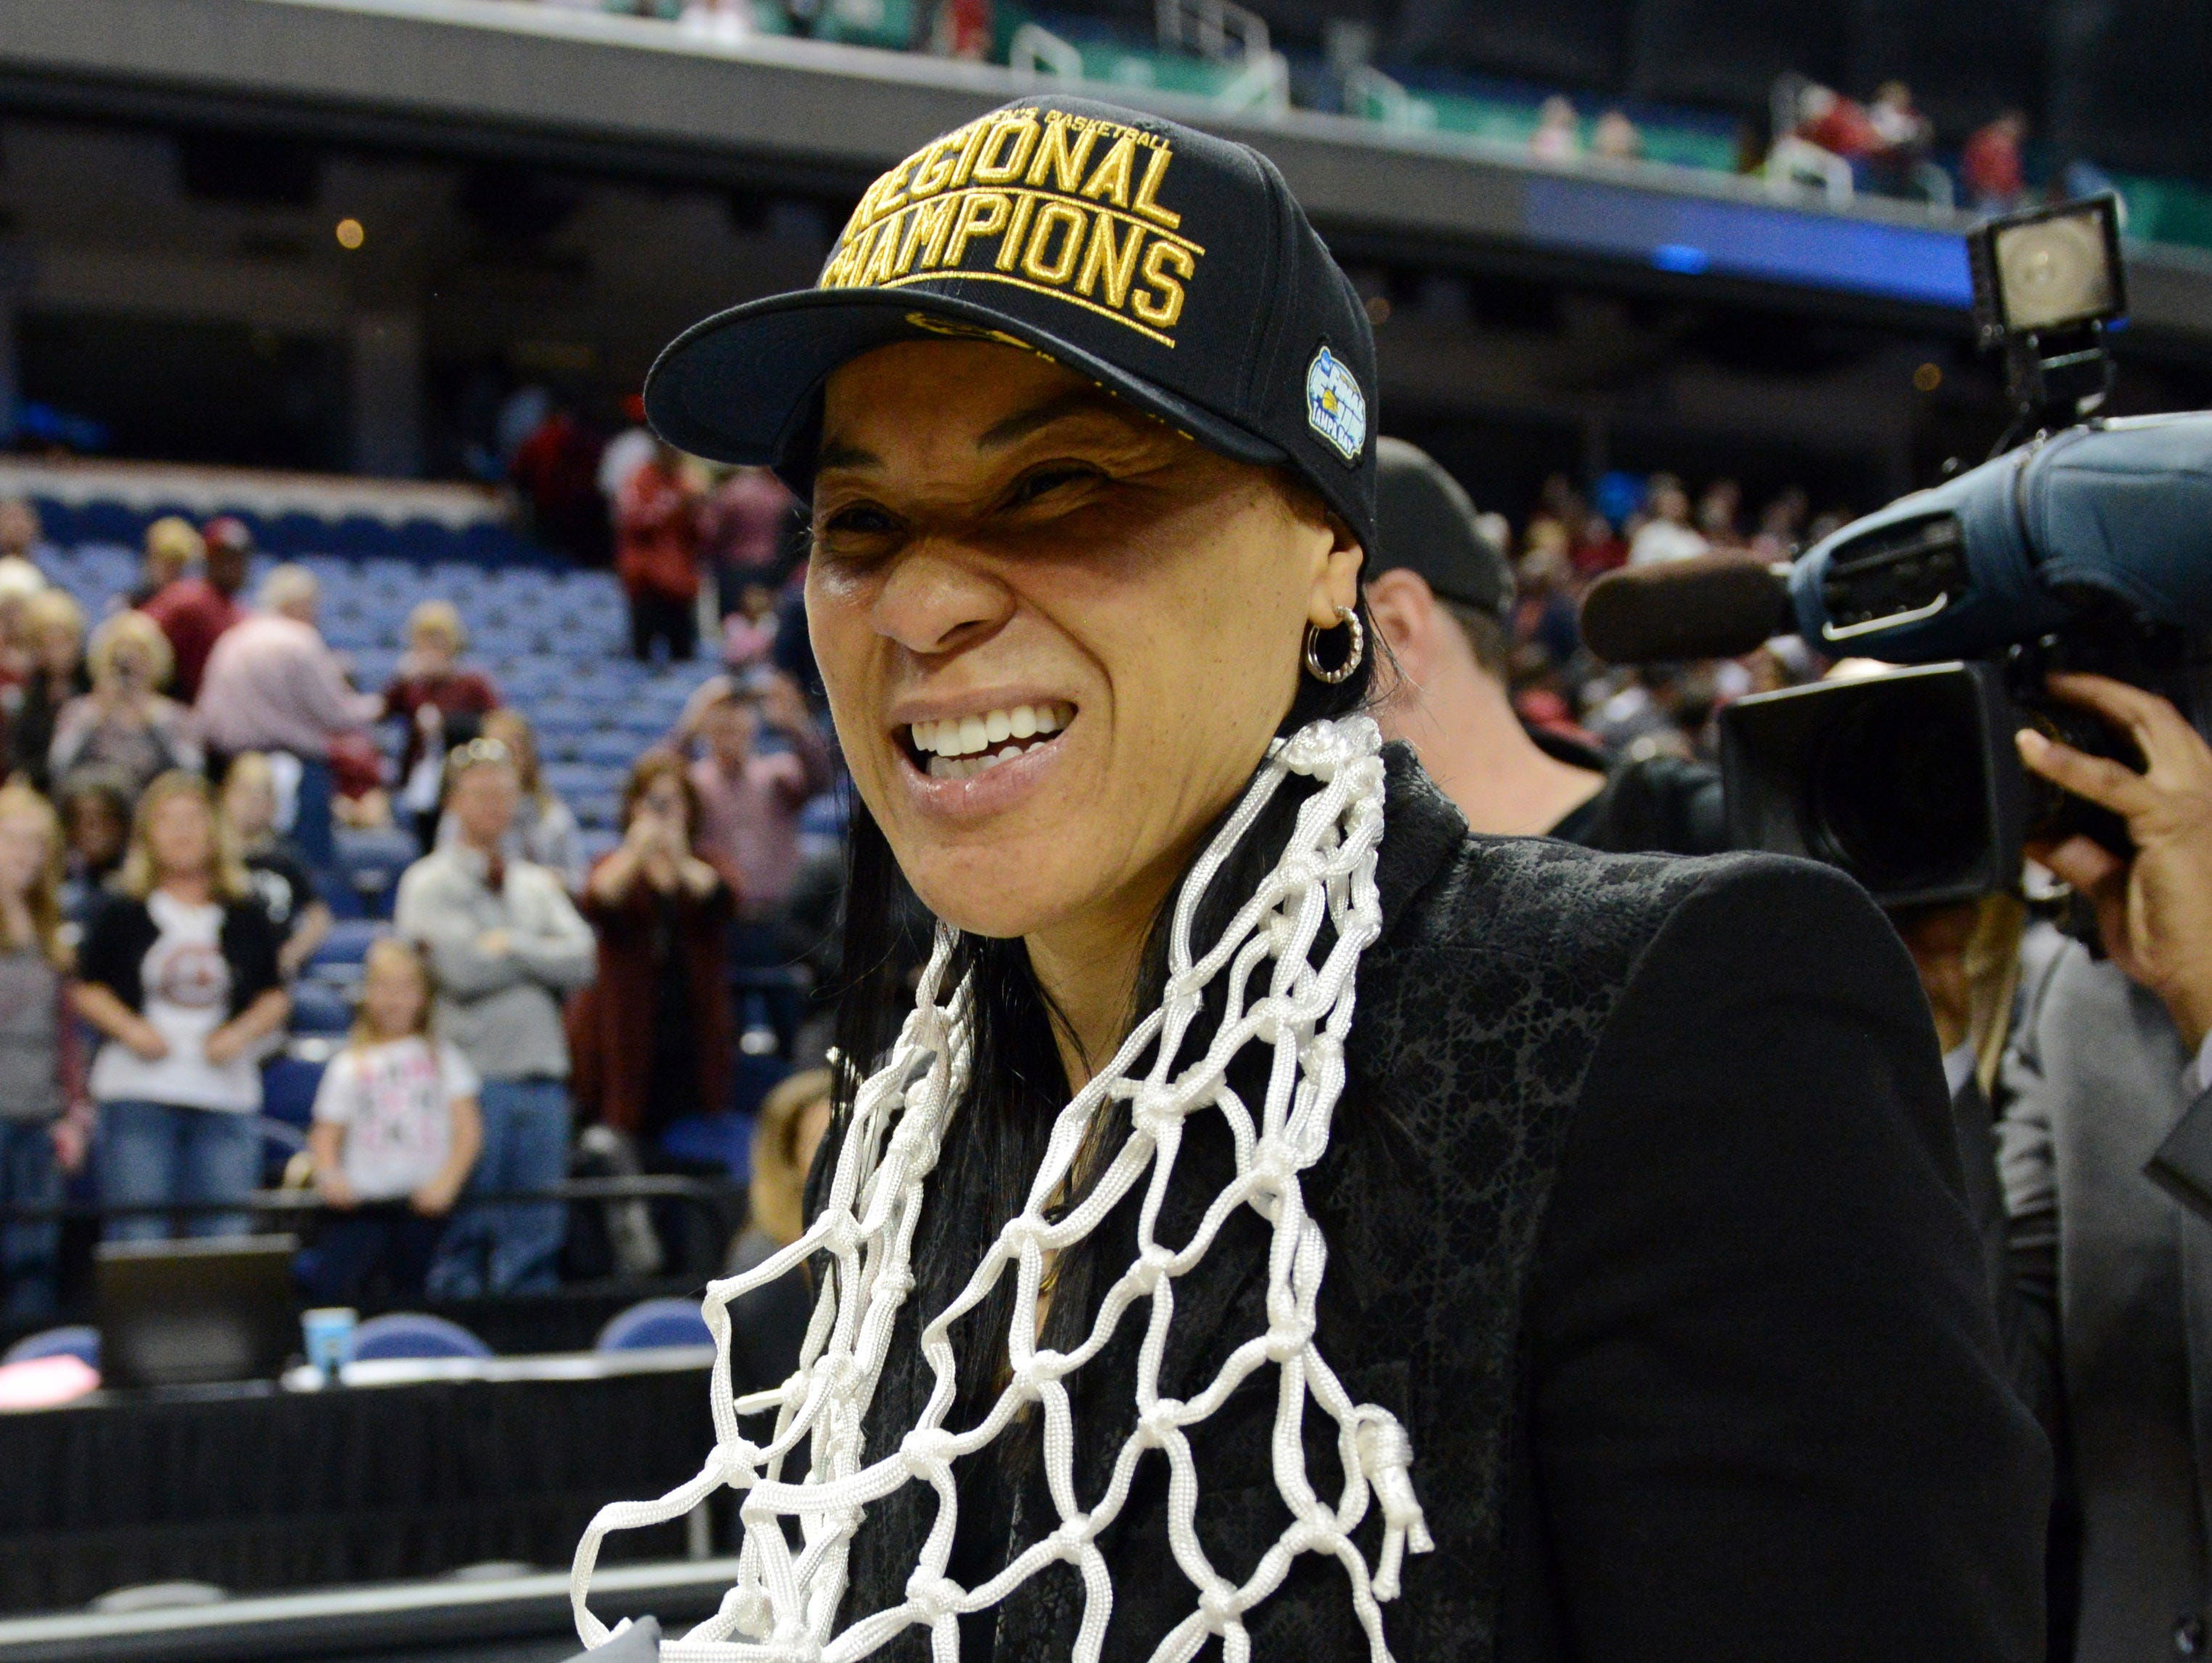 South Carolina Gamecocks head coach Dawn Staley reacts after her team defeated the Florida State Seminoles in the finals of the Greensboro Regional of the 2015 women's NCAA Tournament at Greenboro Coliseum Complex. South Carolina won 80-74.